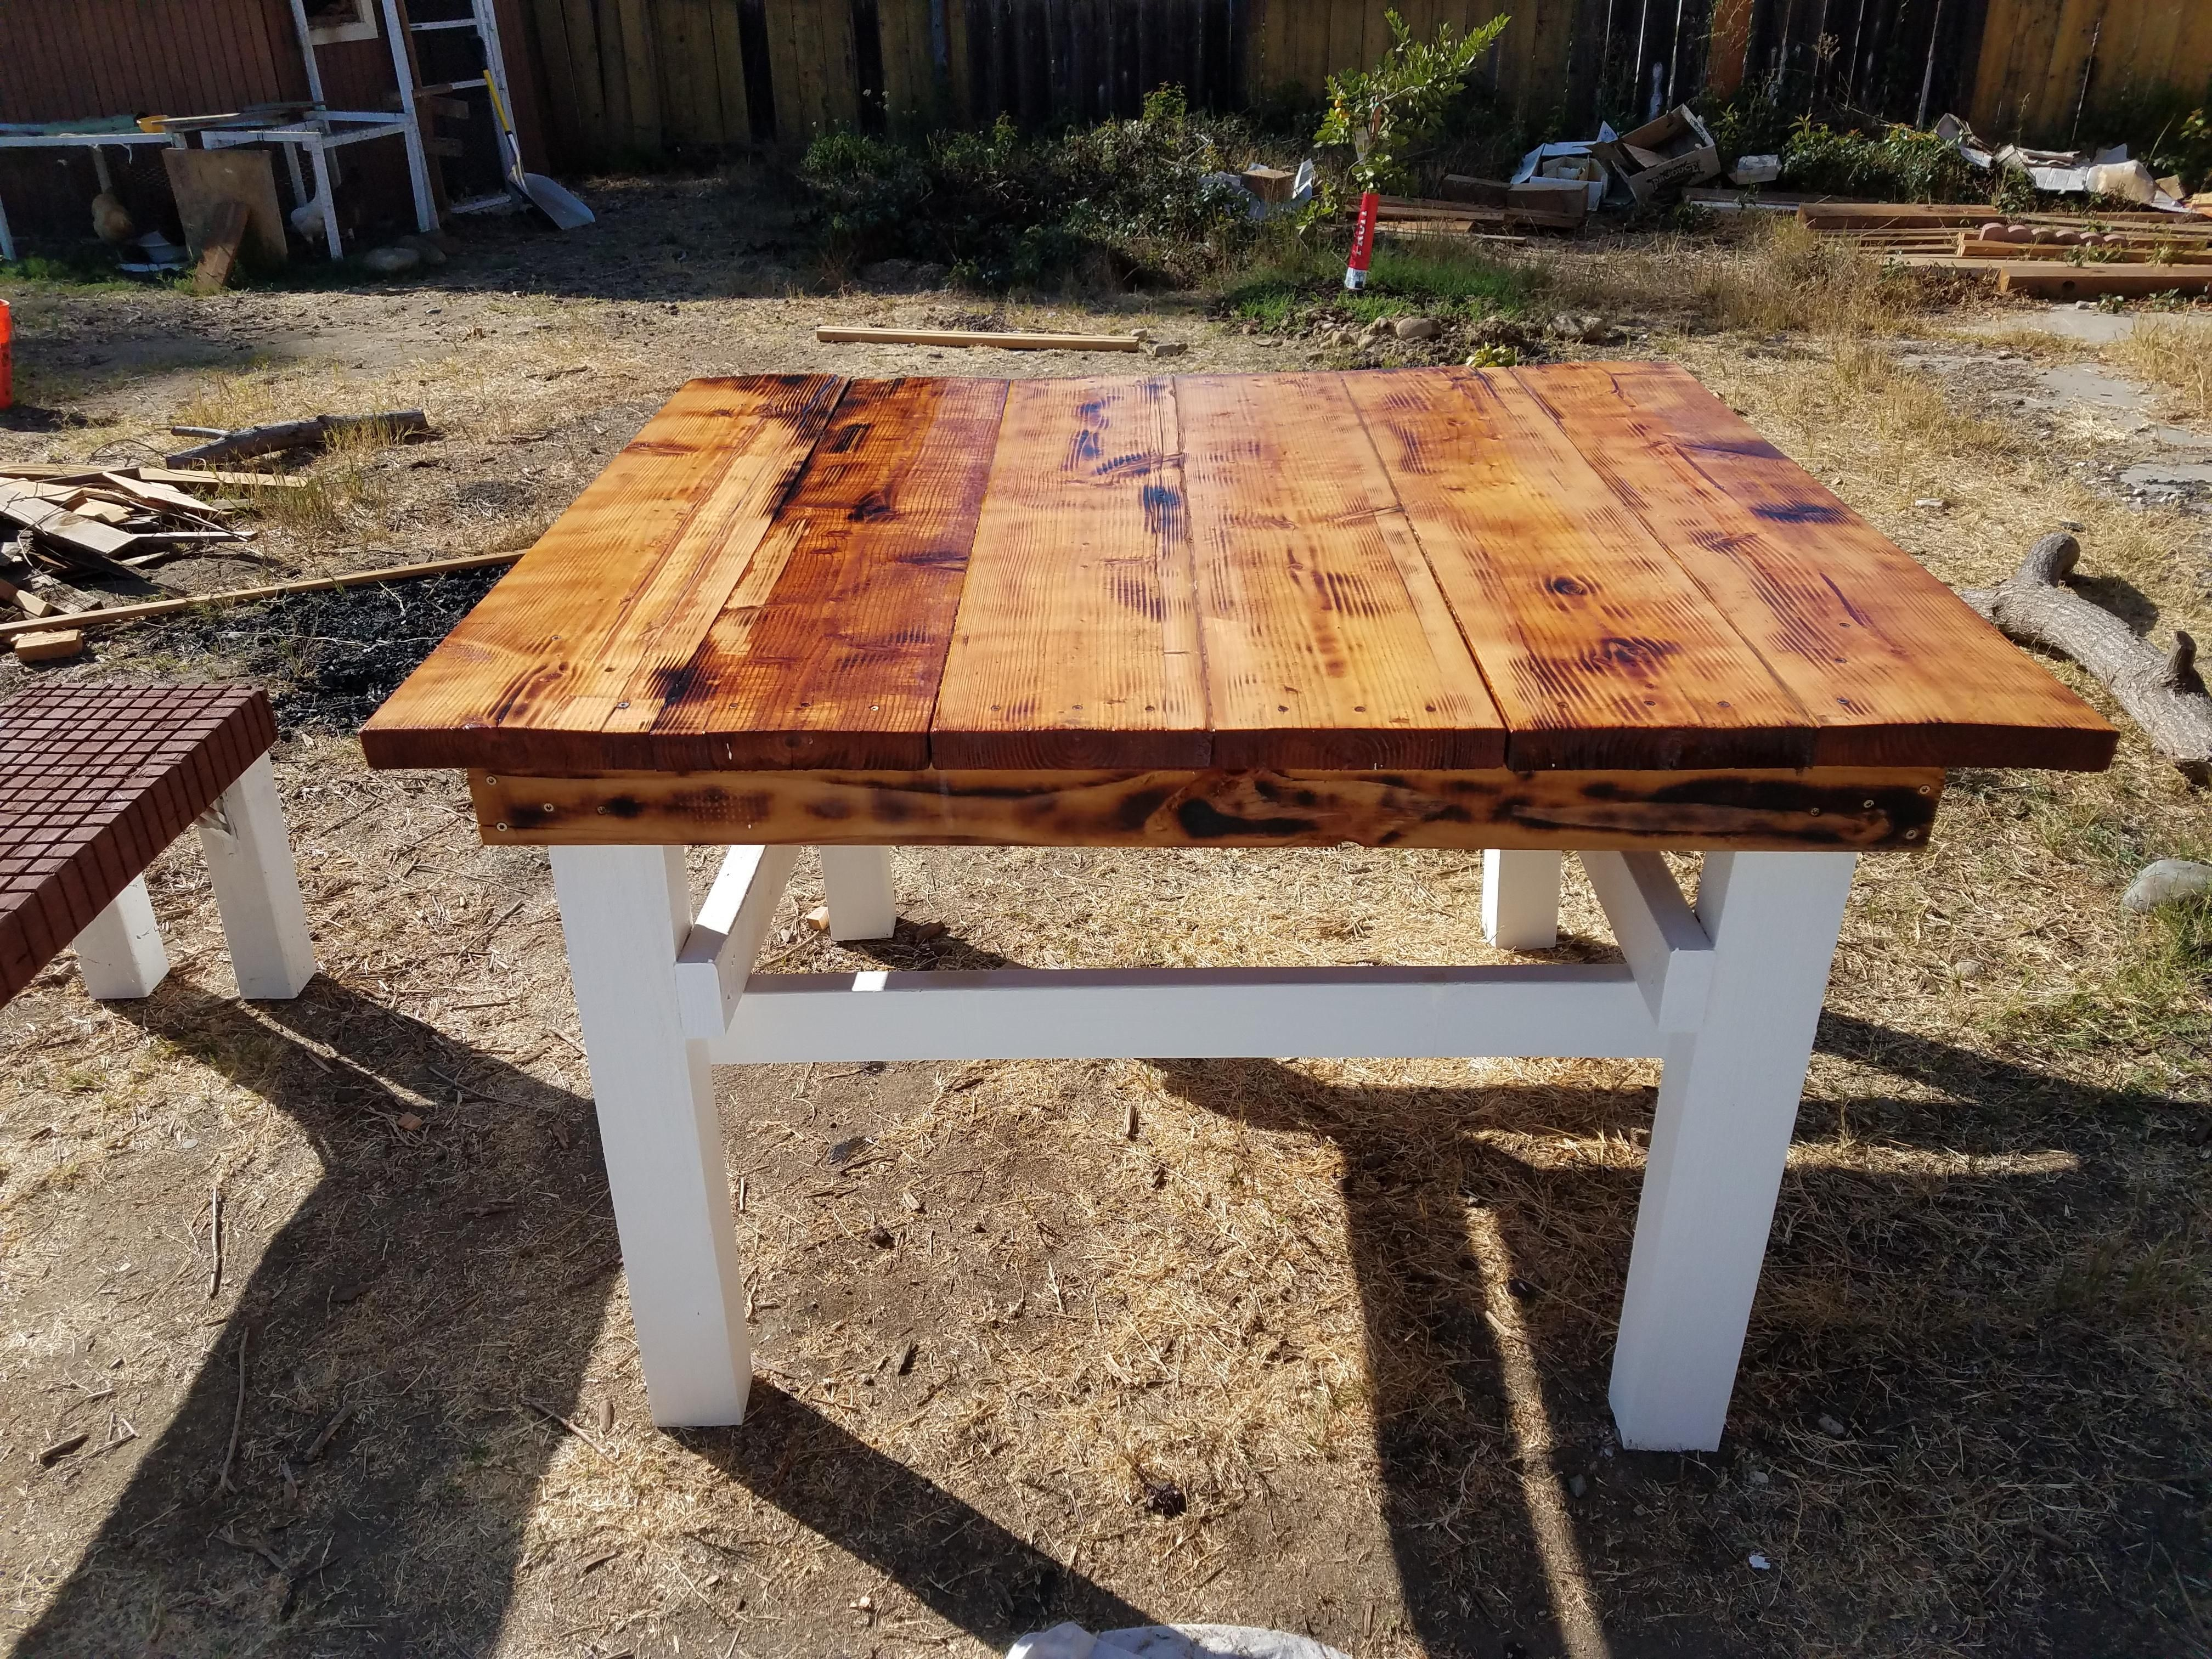 Made An Outdoor Table For The Yard All Out Of Free Wood From A Scrap Pile At The Local Lumber Yard It S Not Perfect But I M Into Outdoor Tables Table